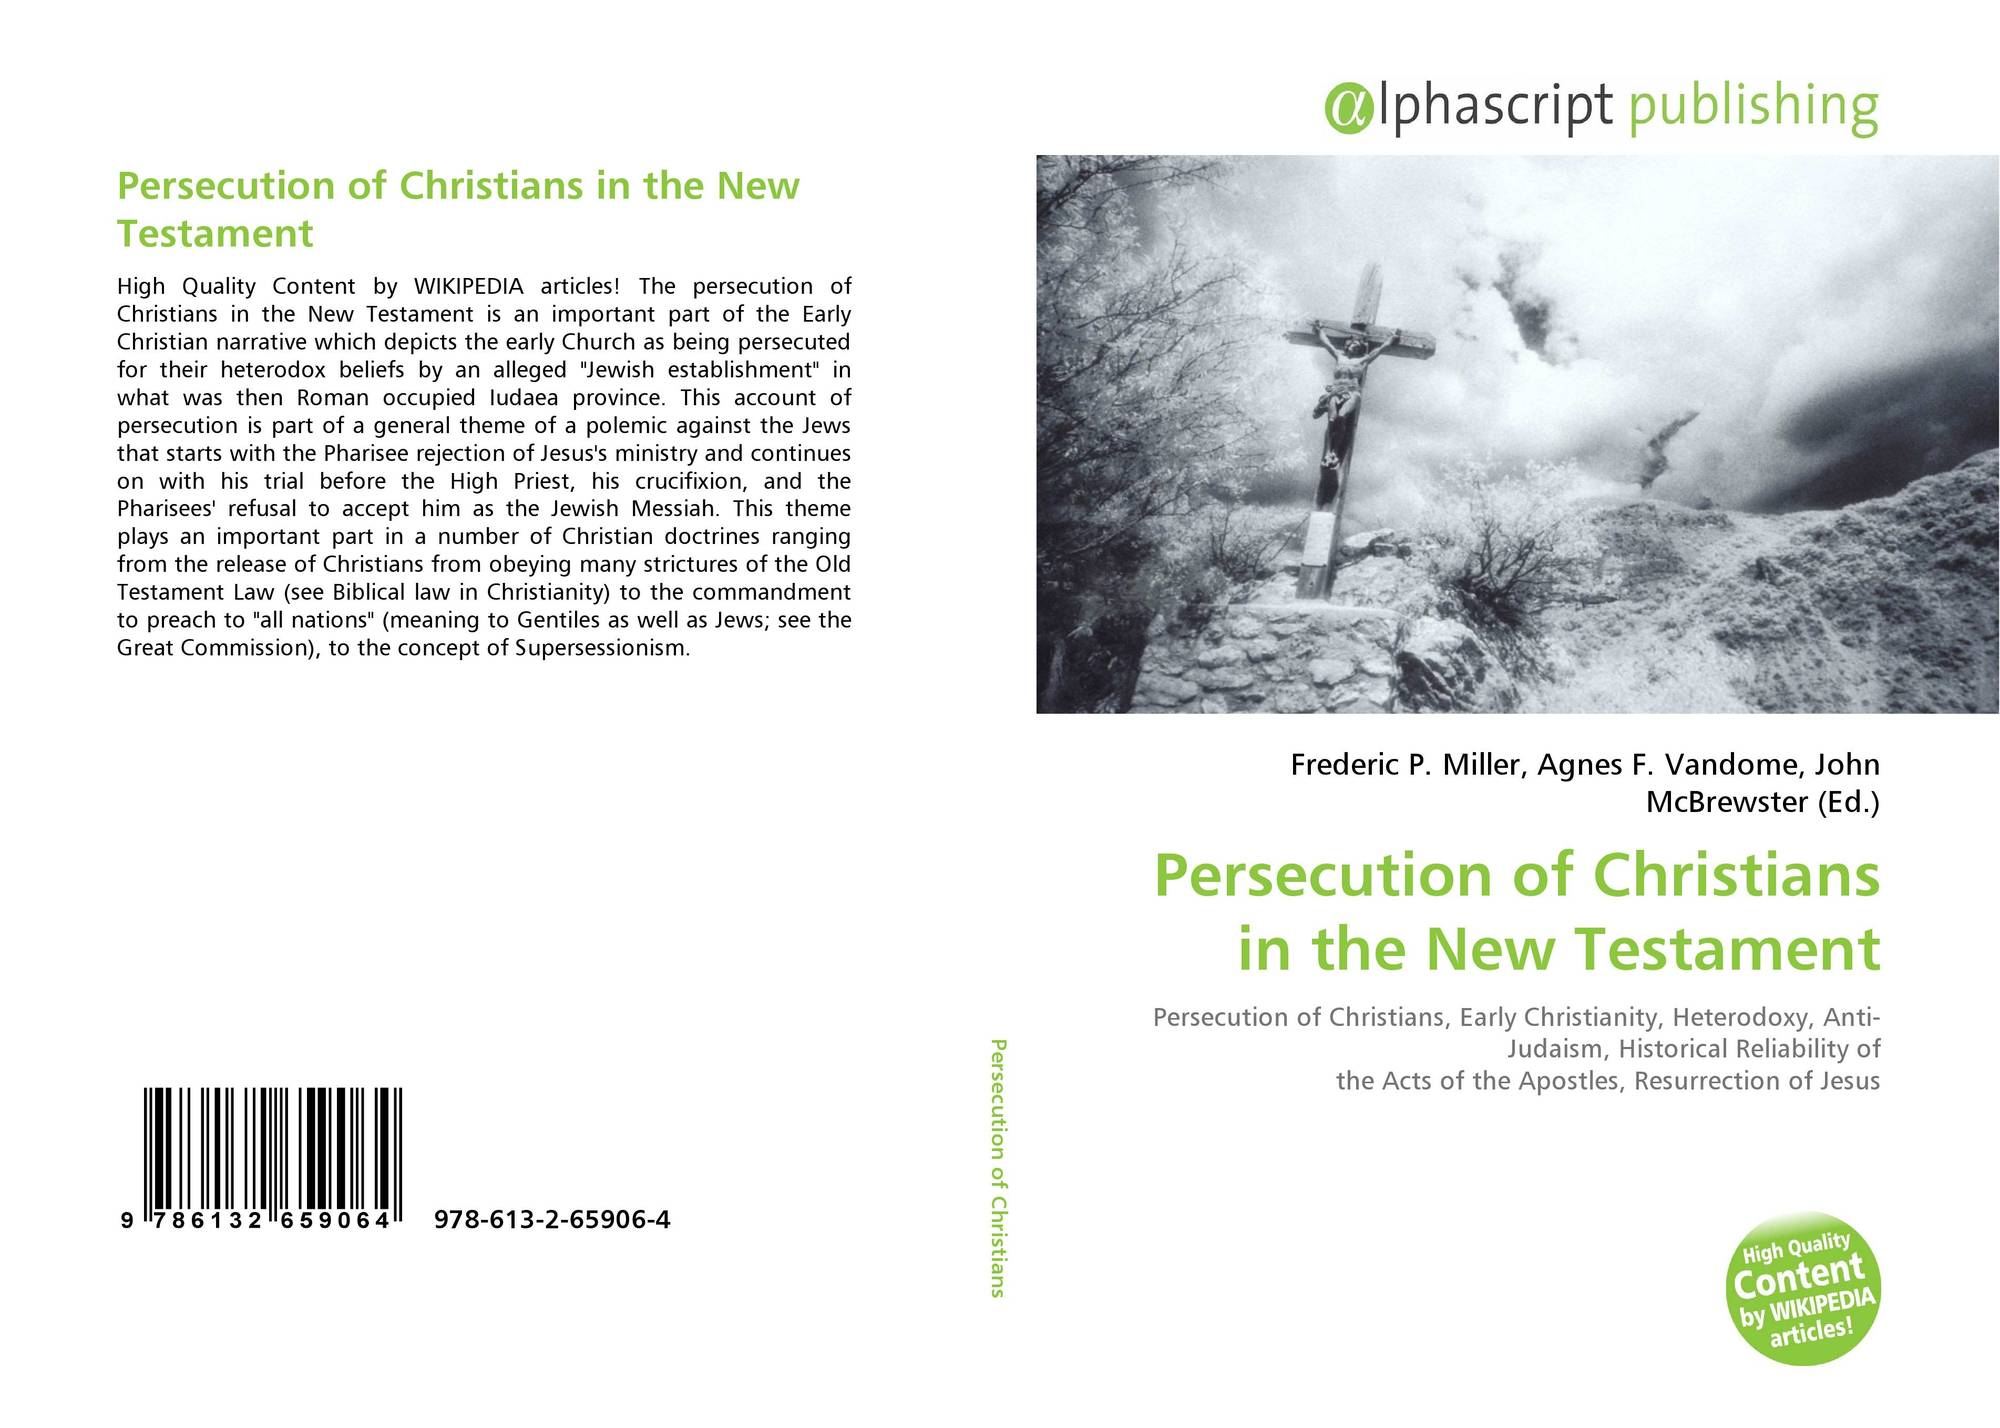 third century christian persecution essay Read this essay on christian persecution come browse our large digital warehouse of free sample essays get the knowledge you need in order to pass your classes and more.